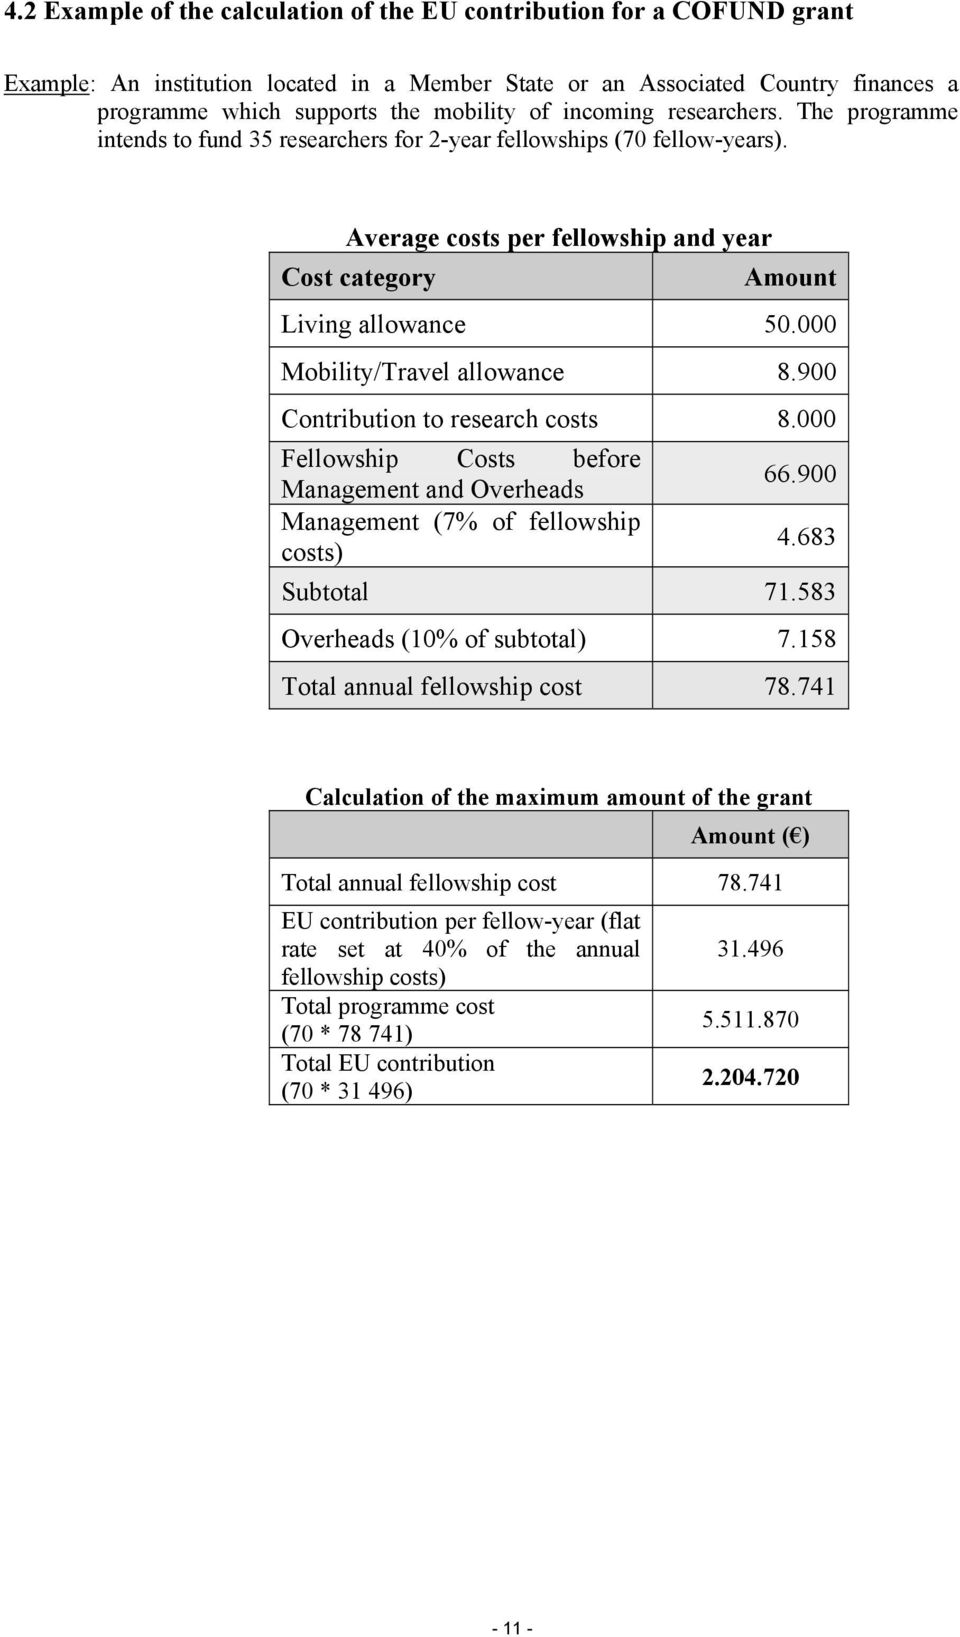 000 Mobility/Travel allowance 8.900 Contribution to research costs 8.000 Fellowship Costs before Management and Overheads 66.900 Management (7% of fellowship costs) 4.683 Subtotal 71.